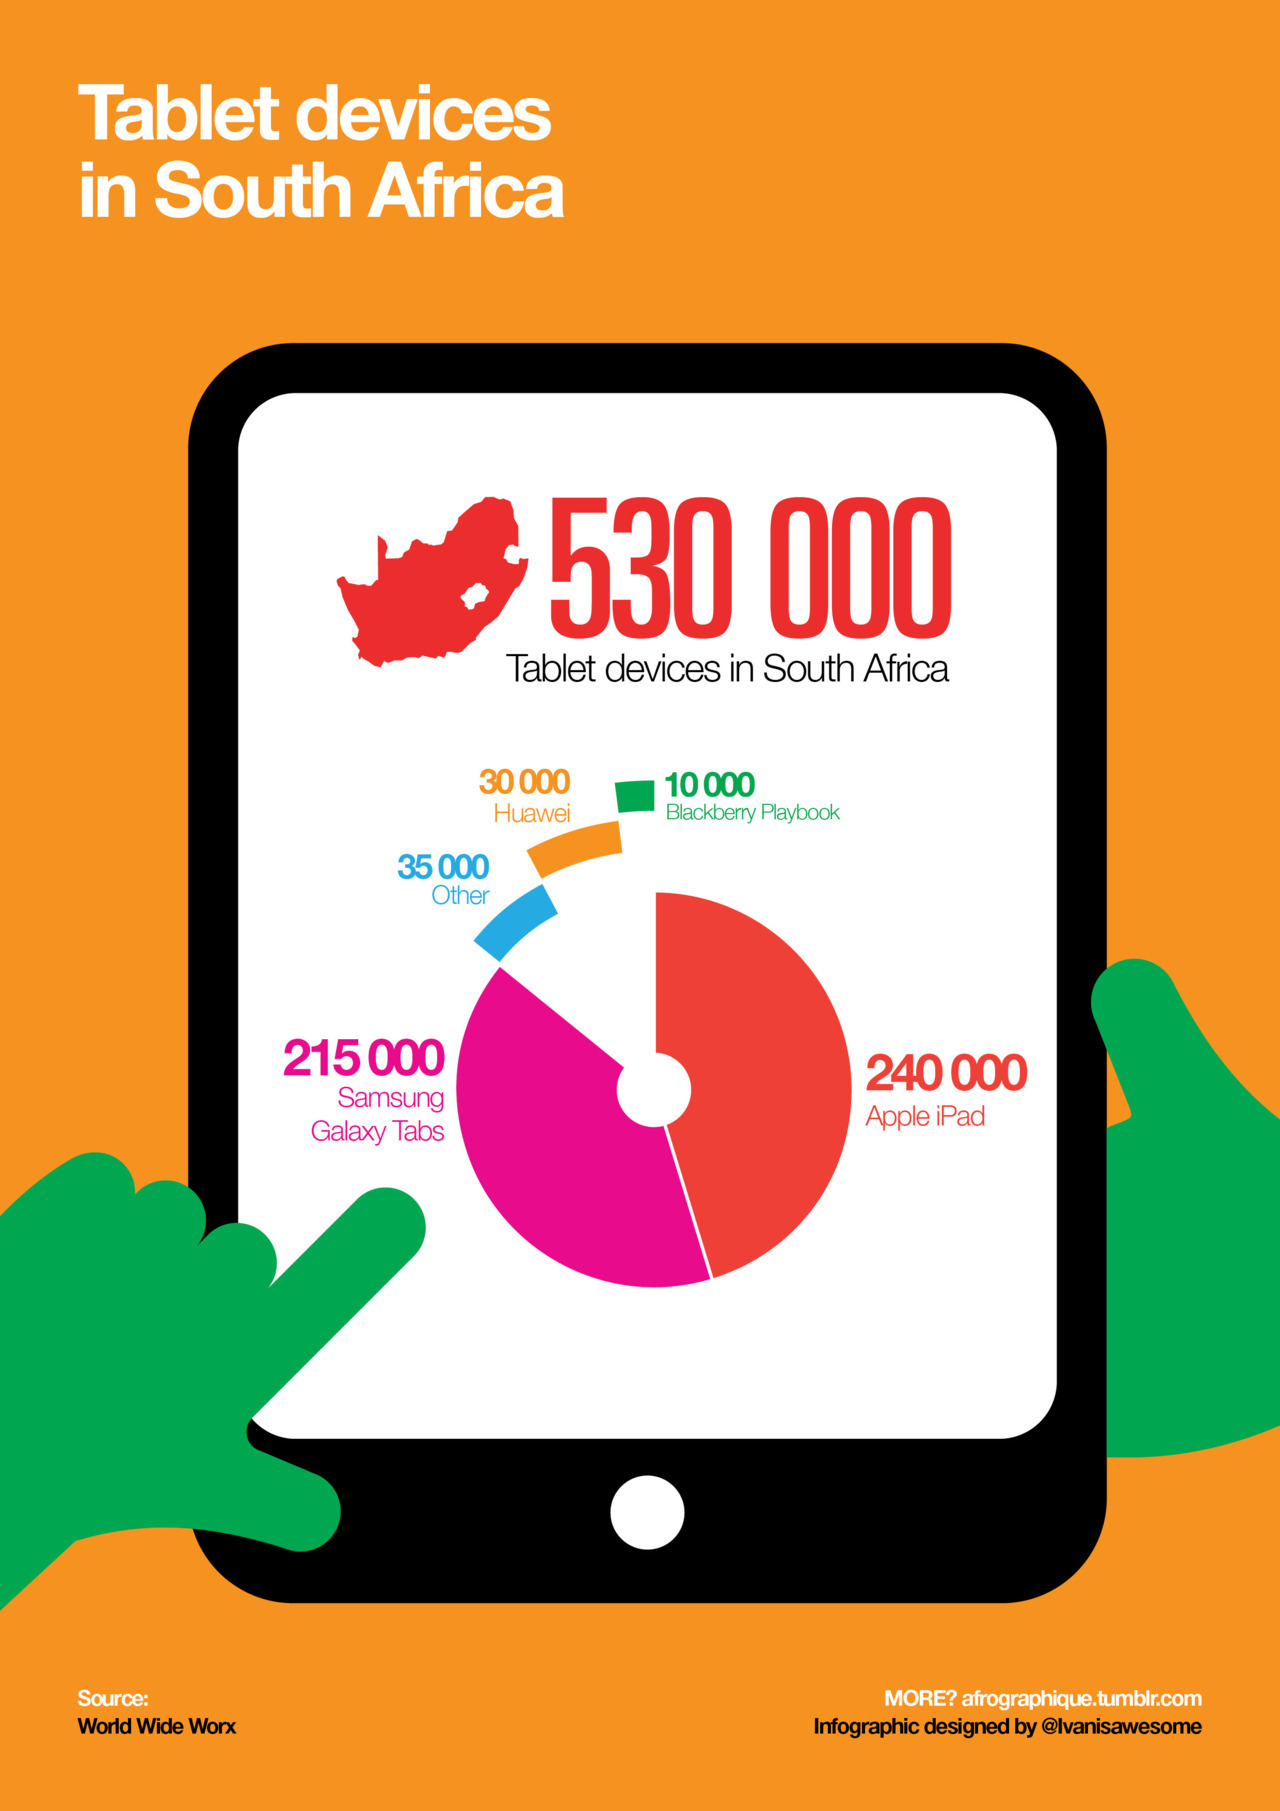 afrographique:  An infographic featuring the numbers of tablet devices in South Africa. Information from World Wide Worx.